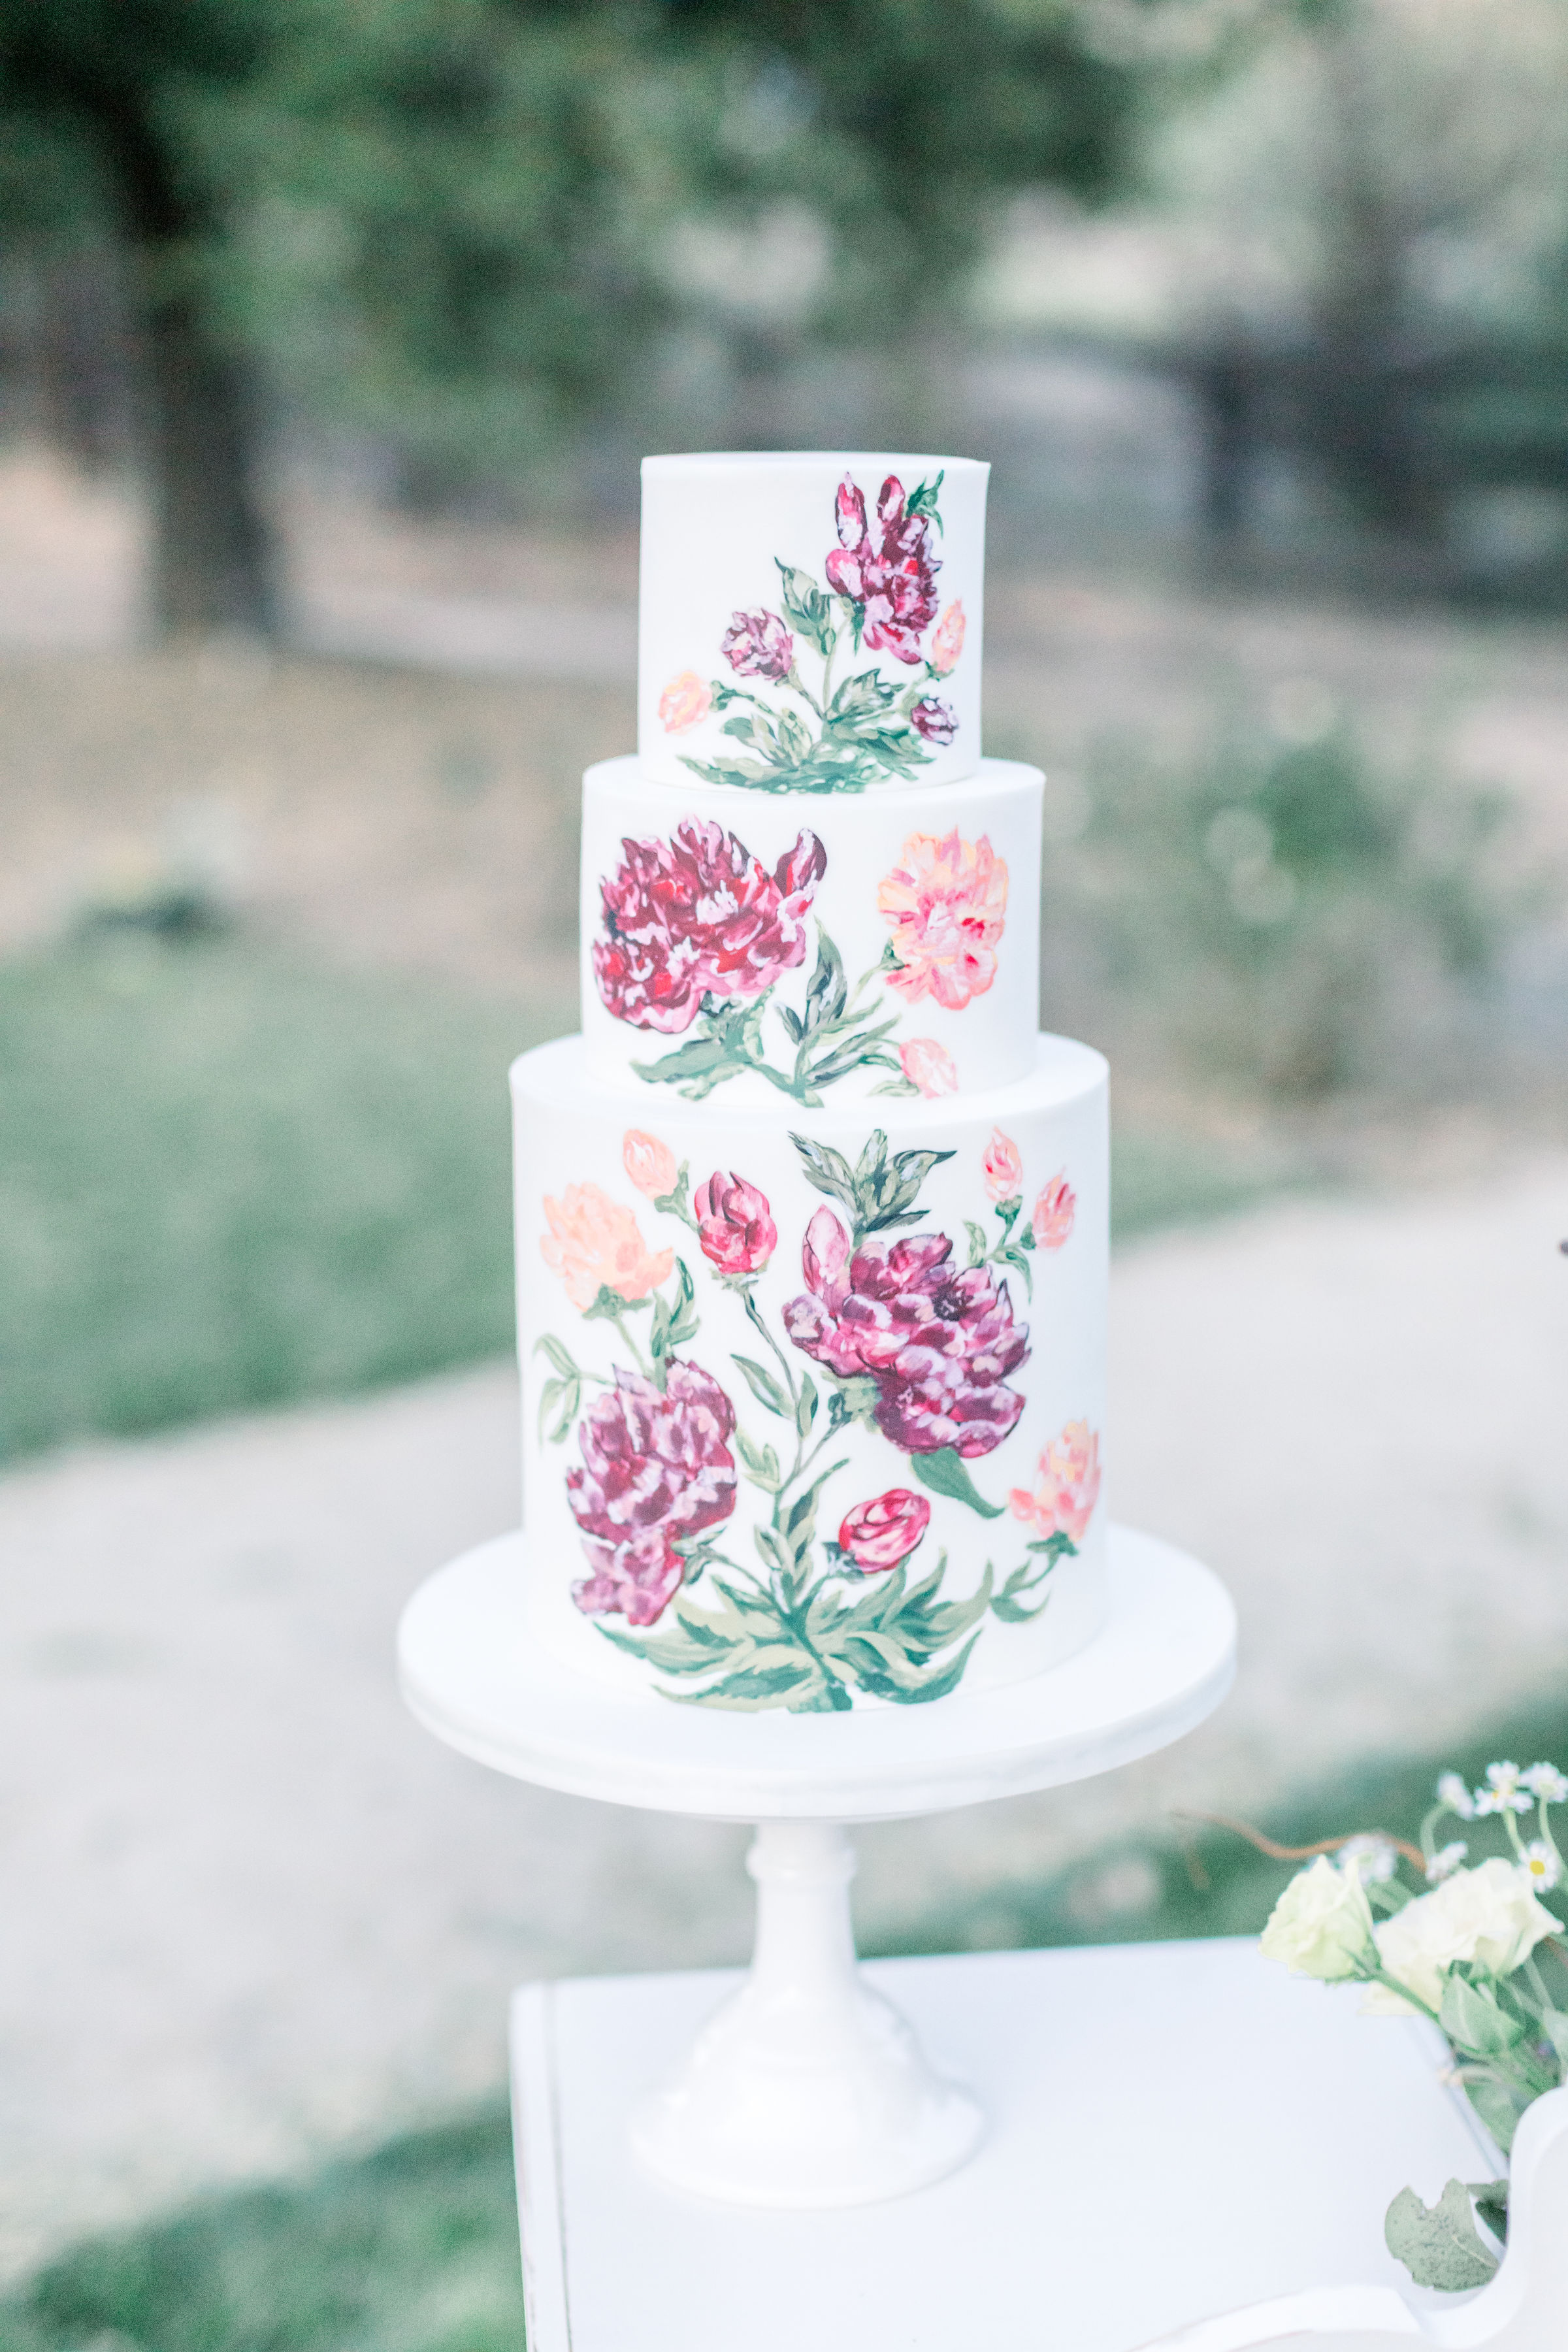 A hand painted floral wedding cake in pink tones. Three tiered white base frosting. White pedestal.